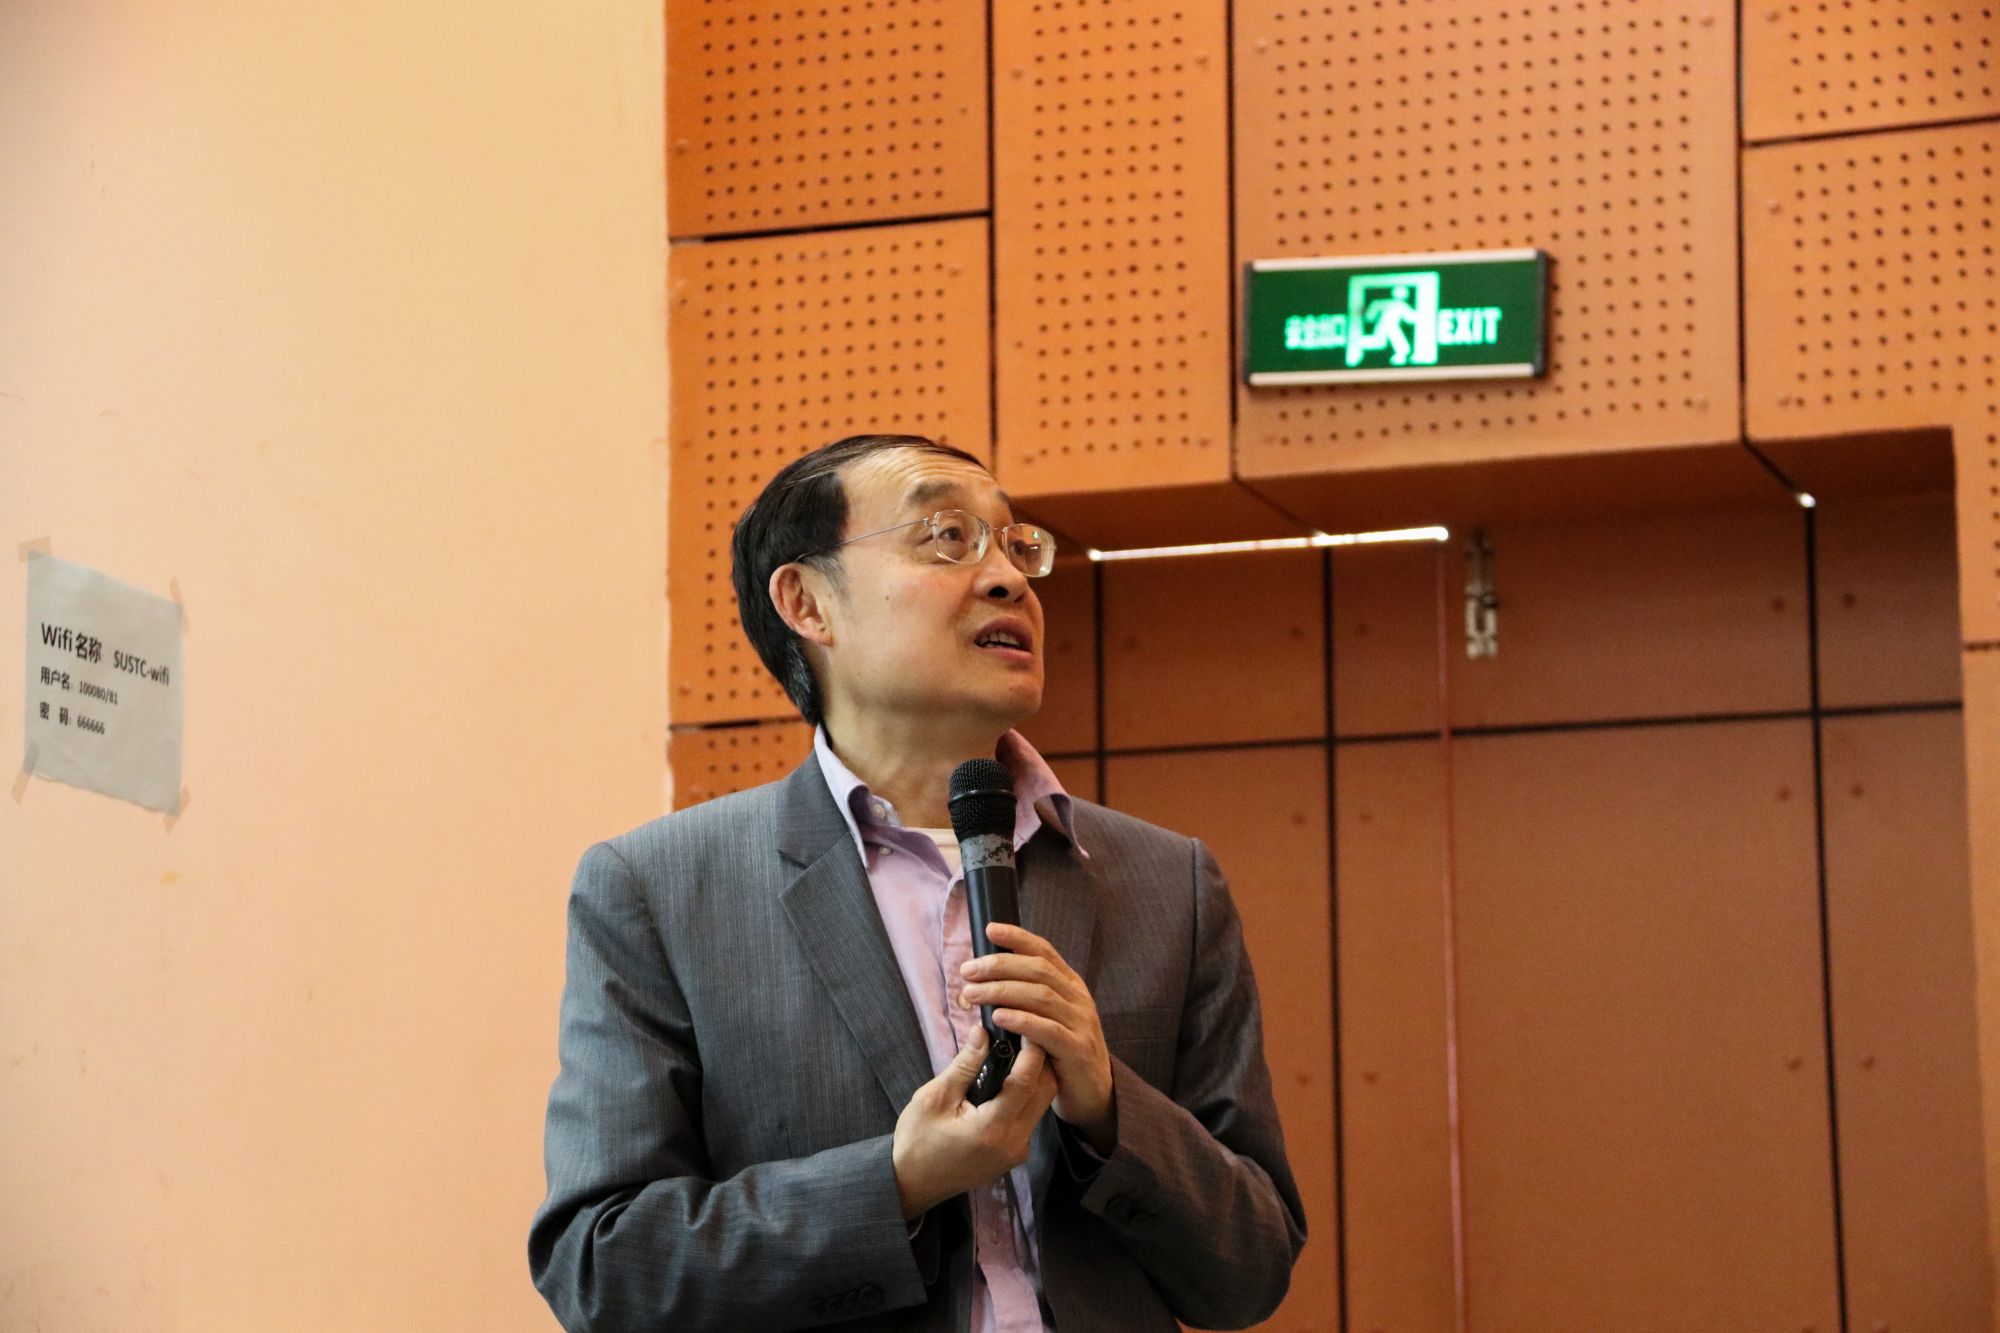 Prof. Xie Xincheng, Dean of the School of Physics, Peking University, Gives Lecture on Quantum Materials